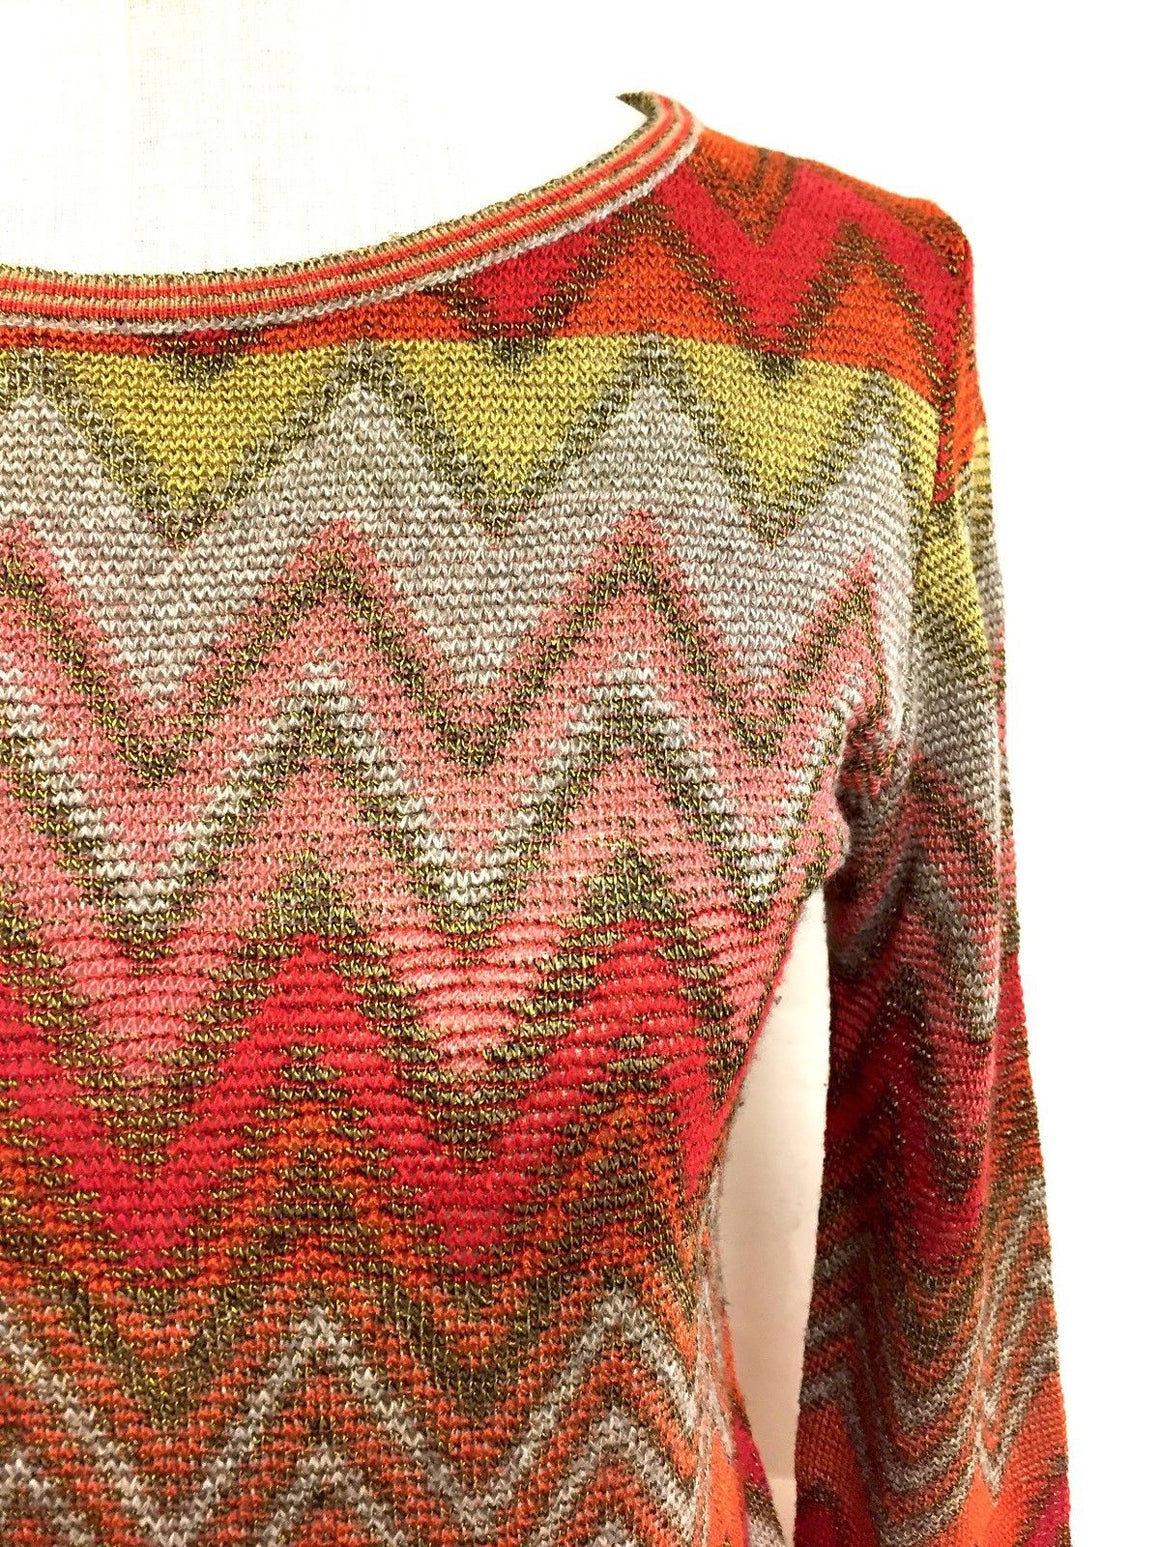 ROBERTA di CAMERINO  Vintage Red/Multicolor Viscose-Blend Knit Sweater Top  Size: IT42 / 6